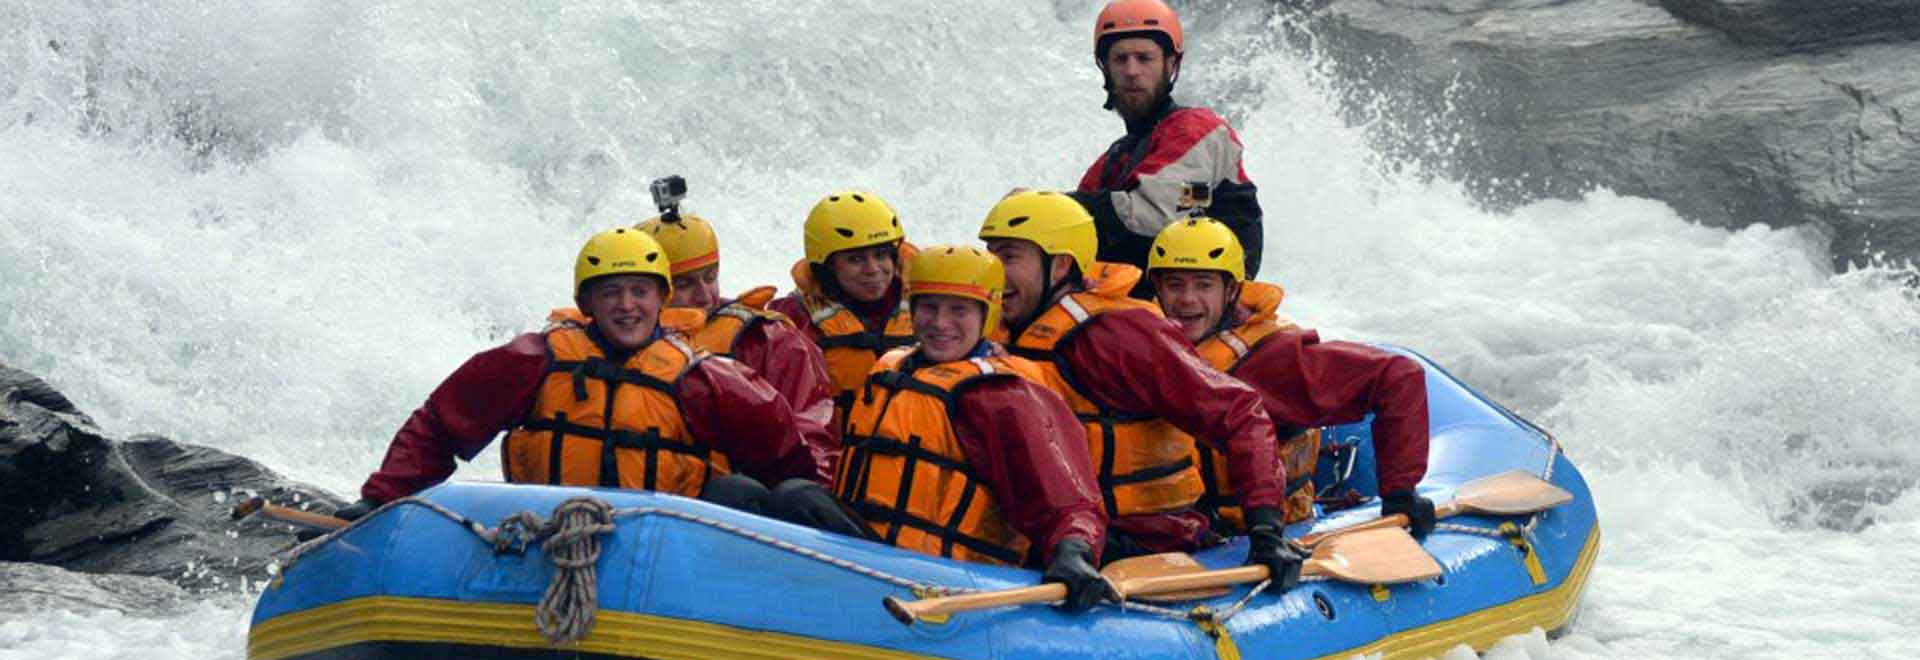 Challenge Rafting Shotover River H day